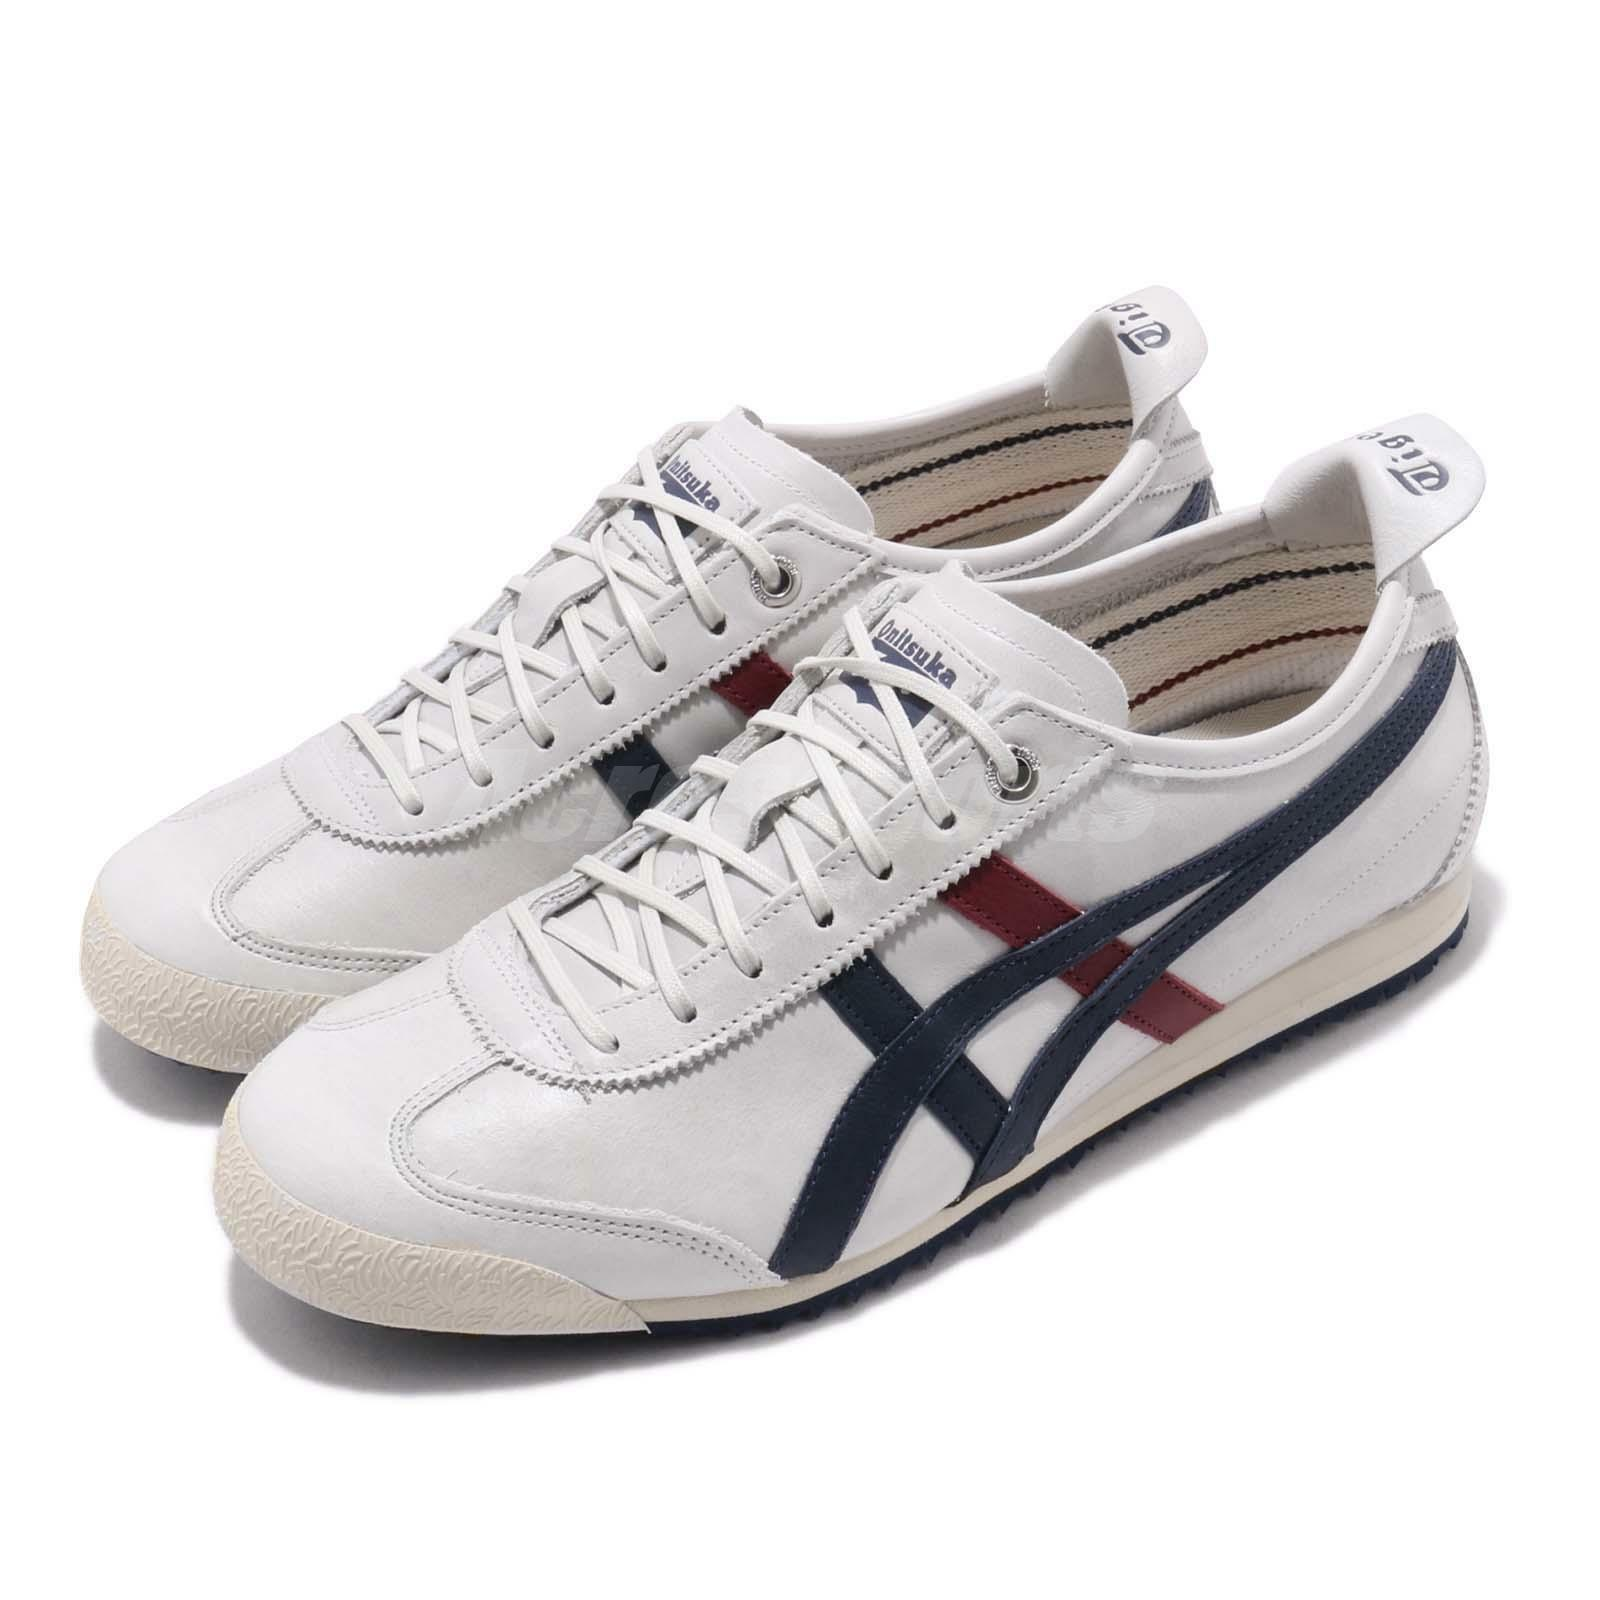 Asics Onitsuka Tiger Mexico 66 SD Grey blueee Red Retro Running shoes 1183A474-020